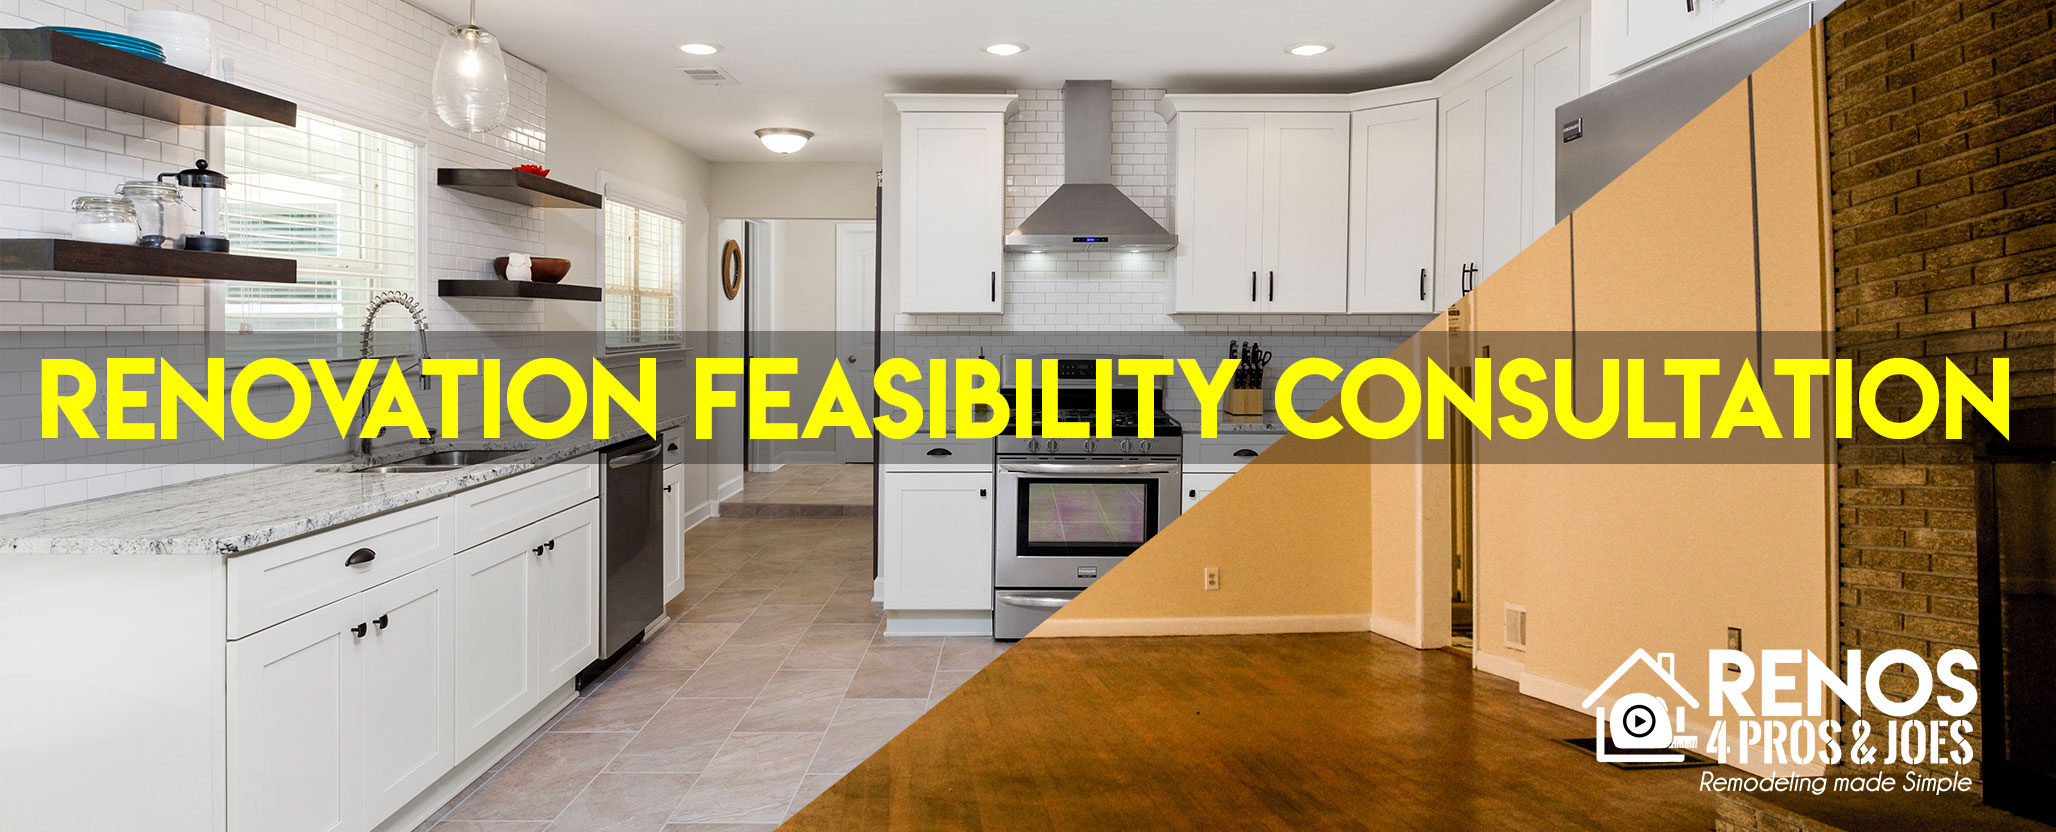 Renovation Feasibility Consultation